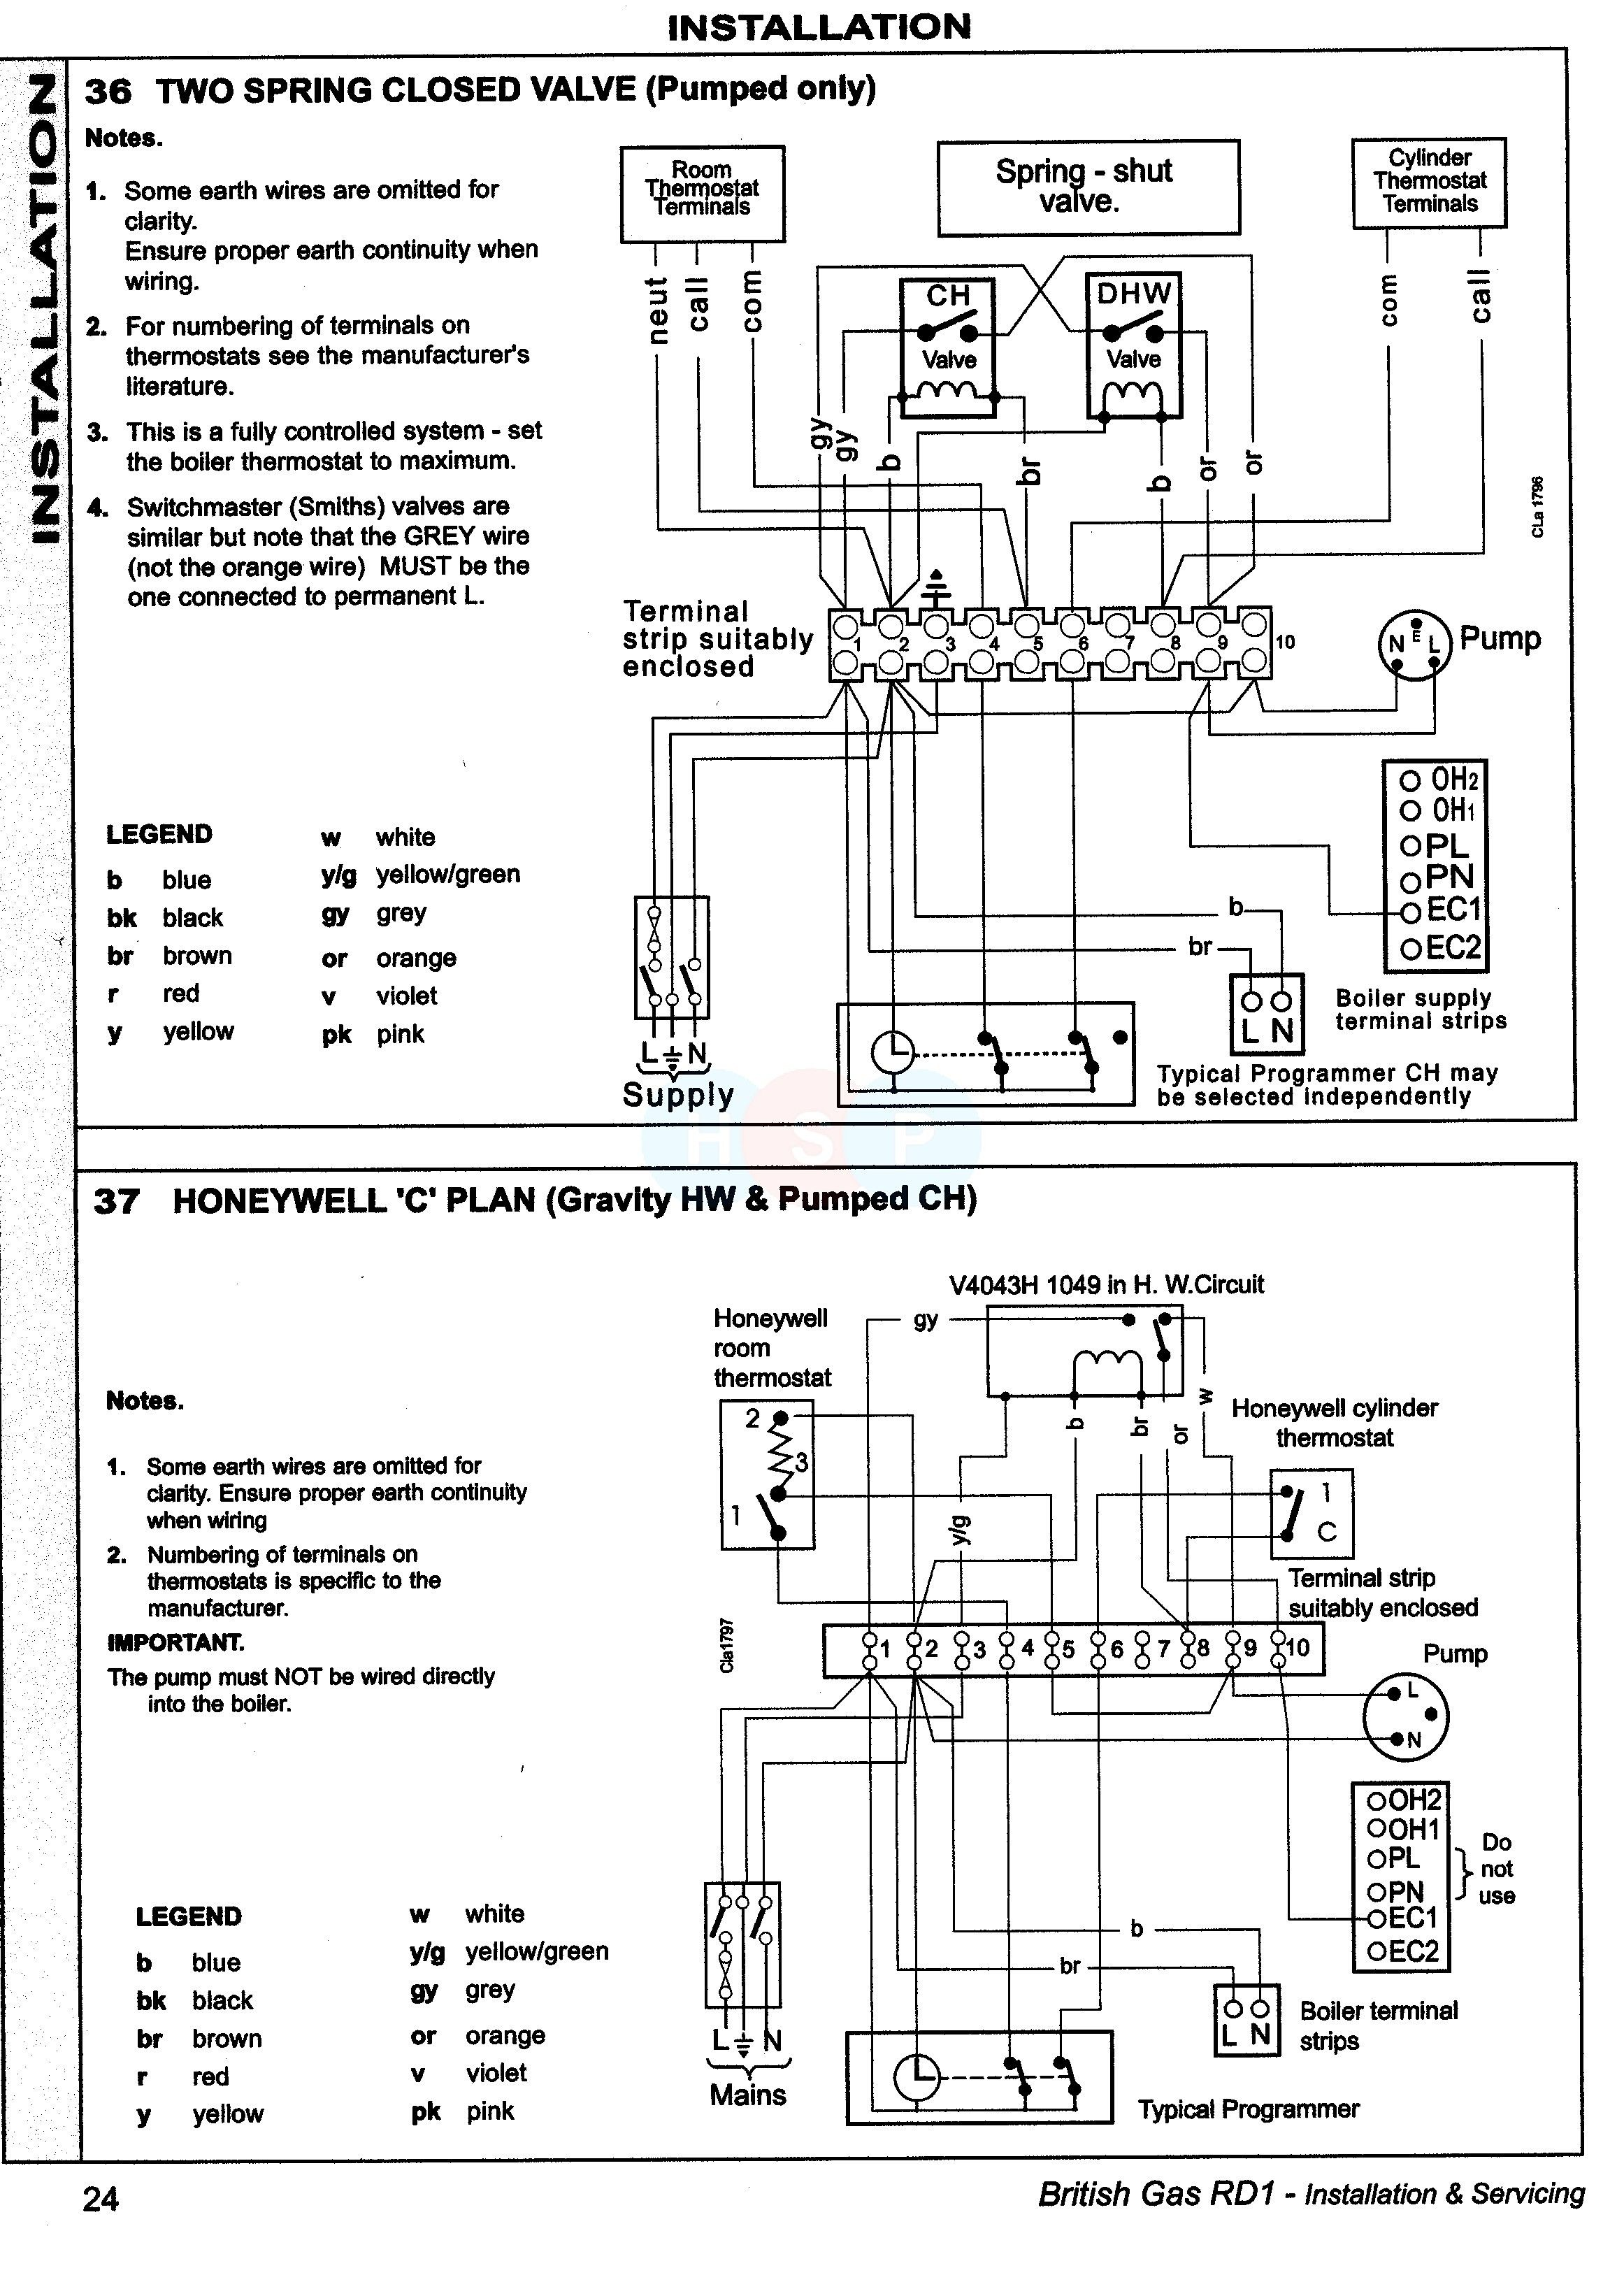 New Wiring Diagram For Sunvic Central Heating